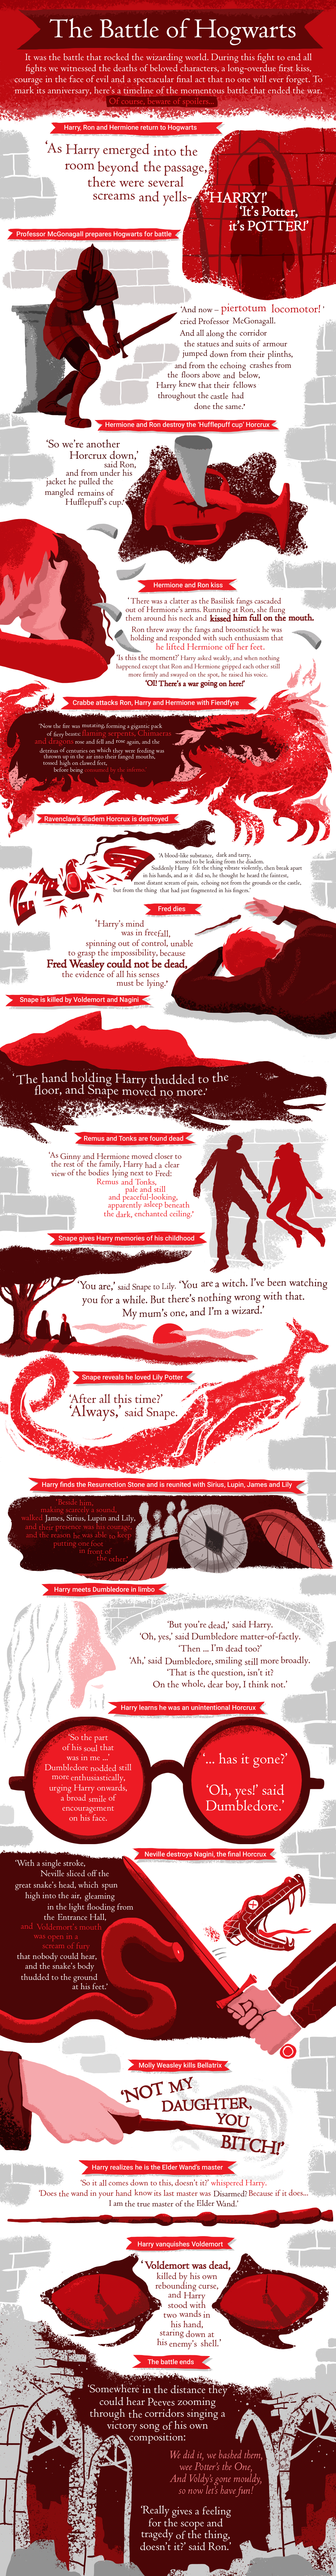 An illustrated timeline of The Battle of Hogwarts for Pottermore | Scriberia